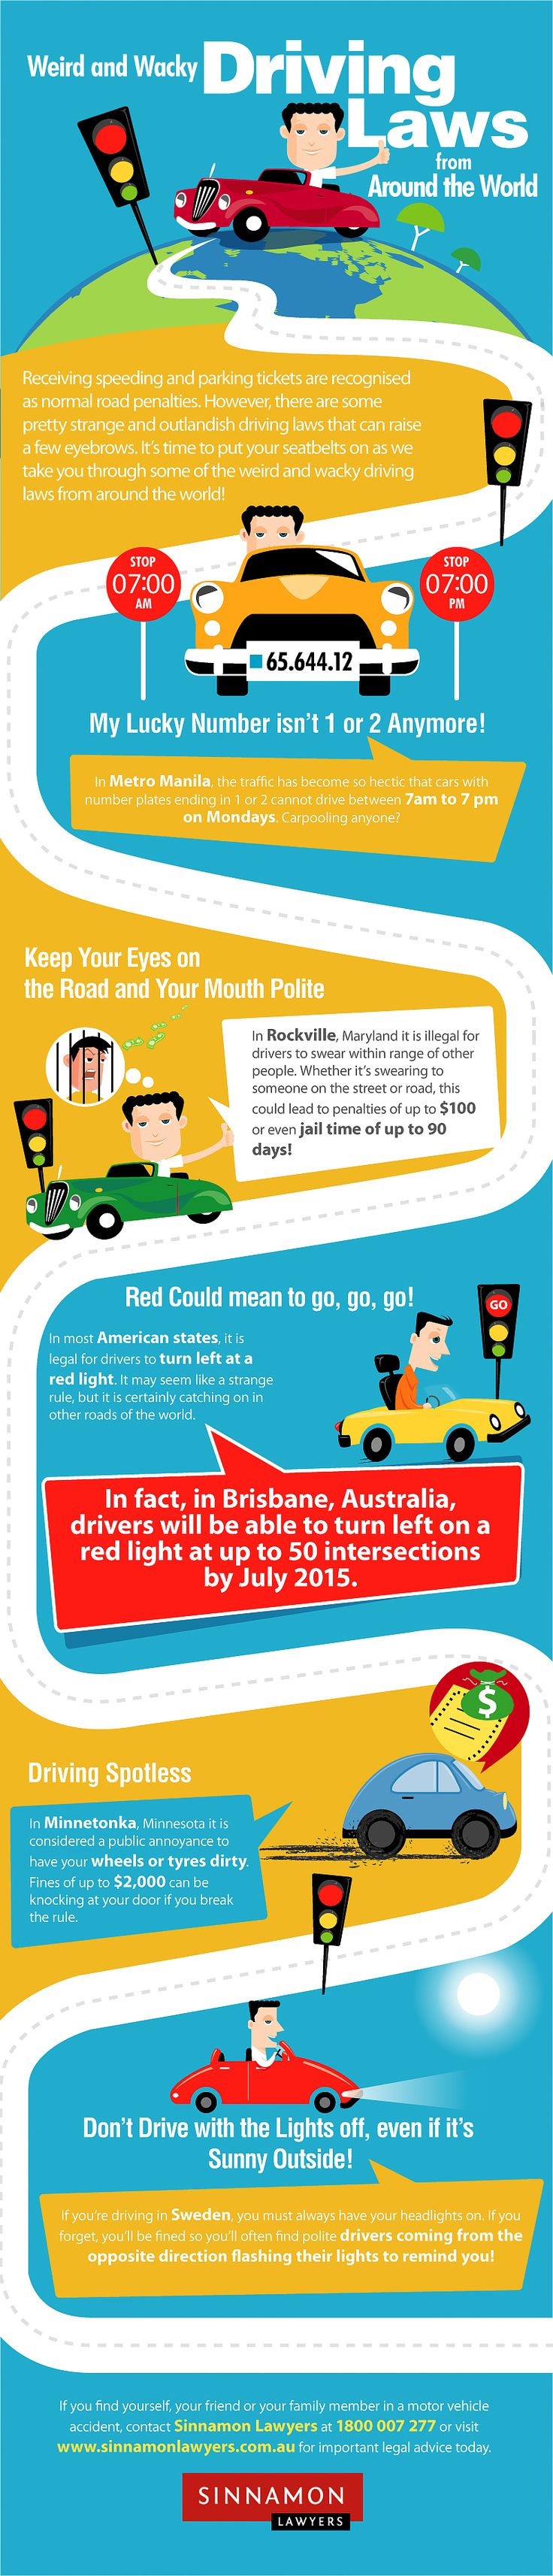 Infographic: Weird and Wacky Driving Rules from Around the World